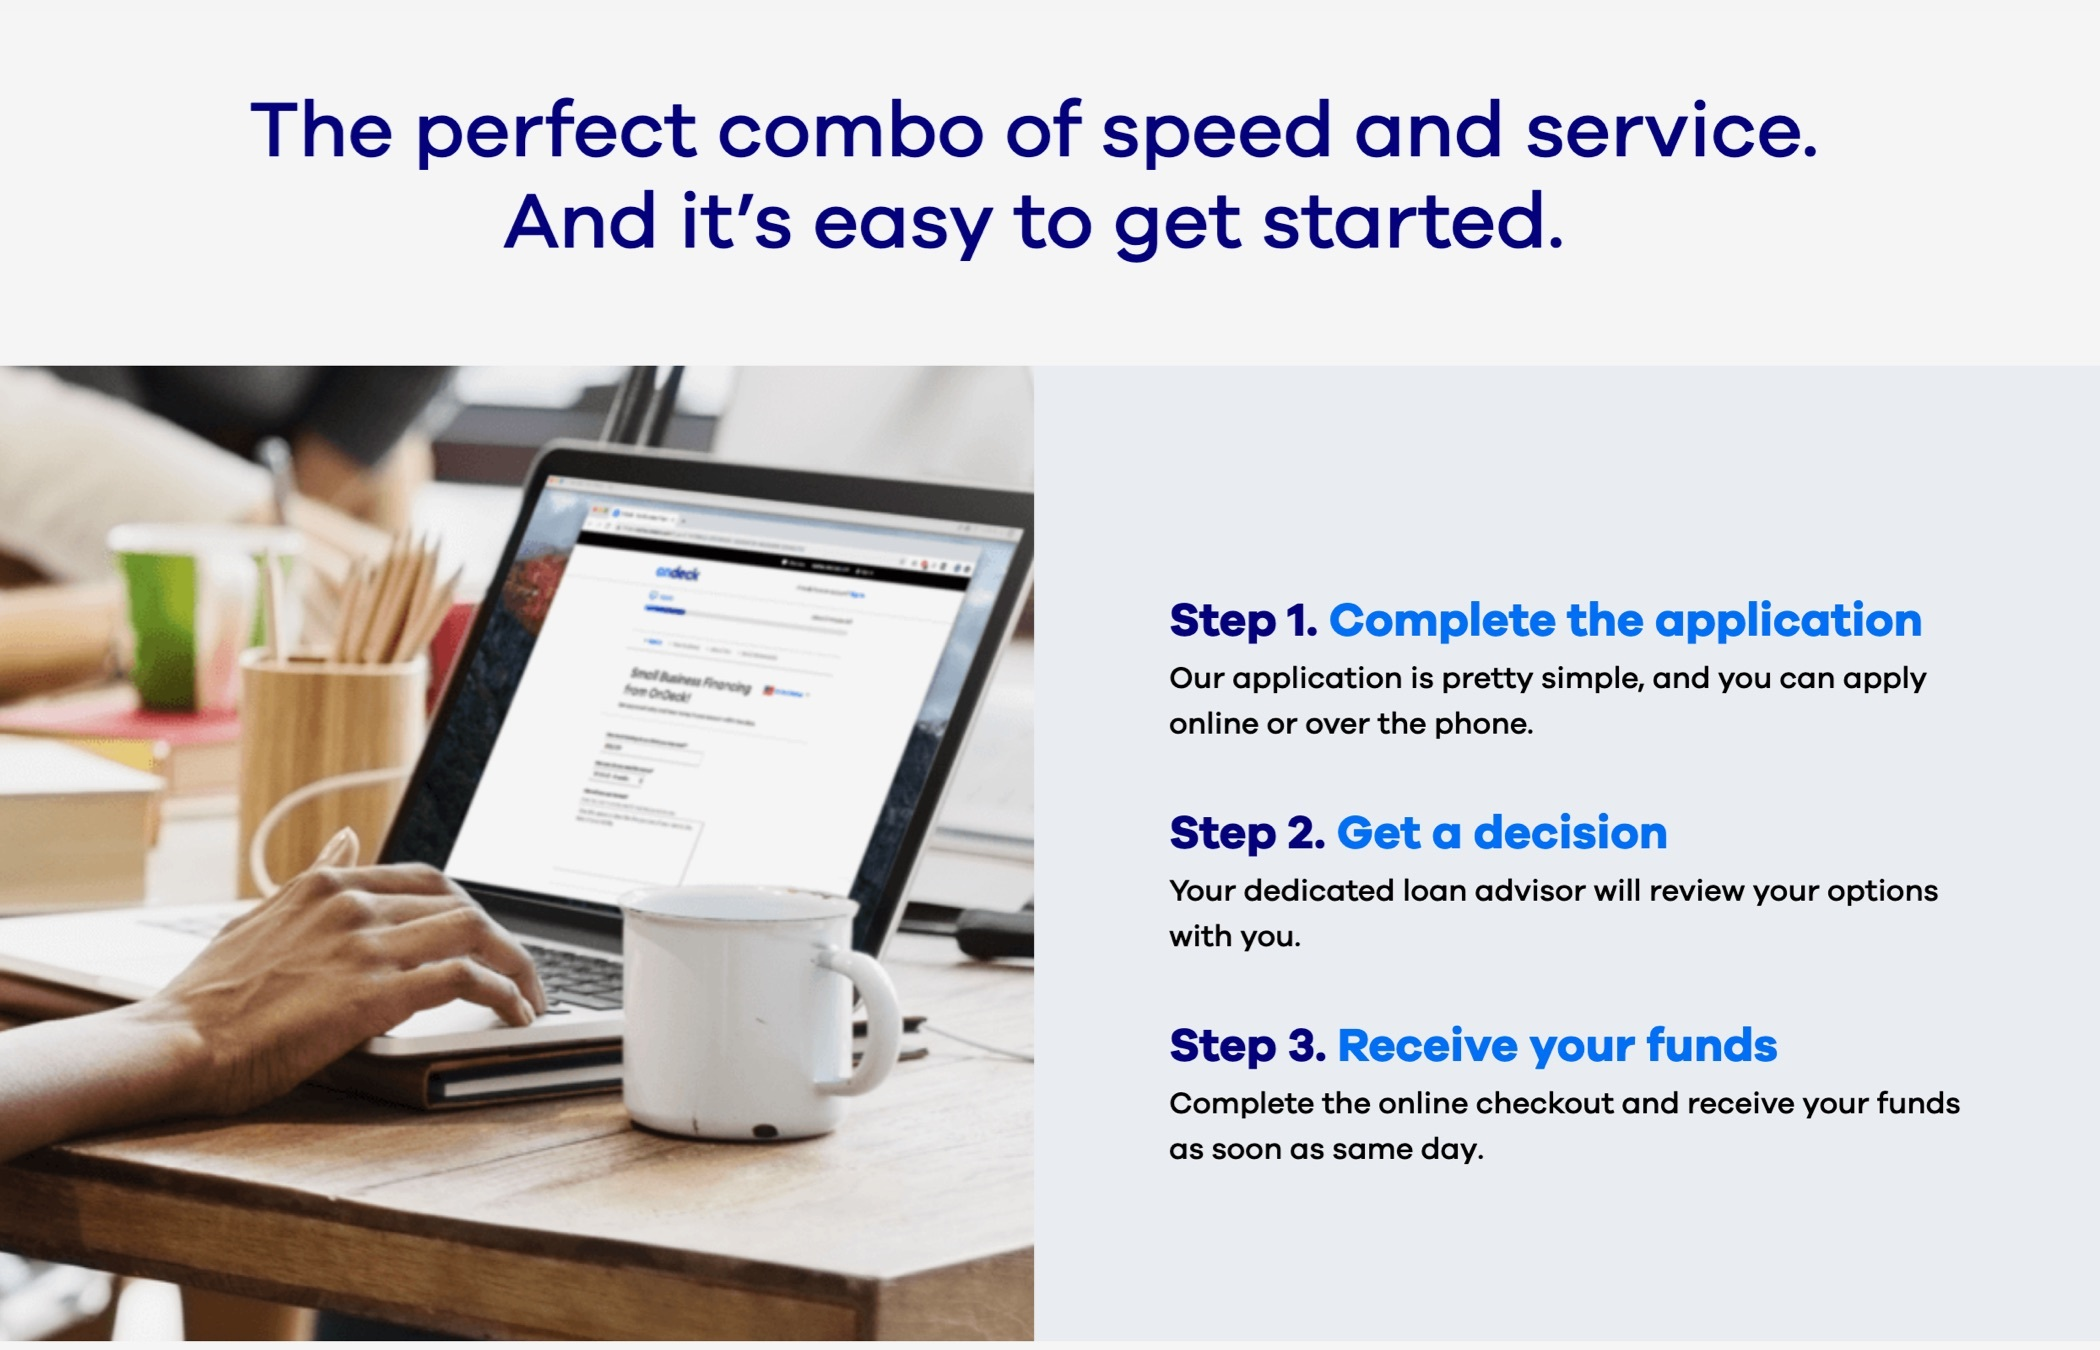 A page from the OnDeck website outlining their three step process: Complete the application; get a decision; receive your funds.